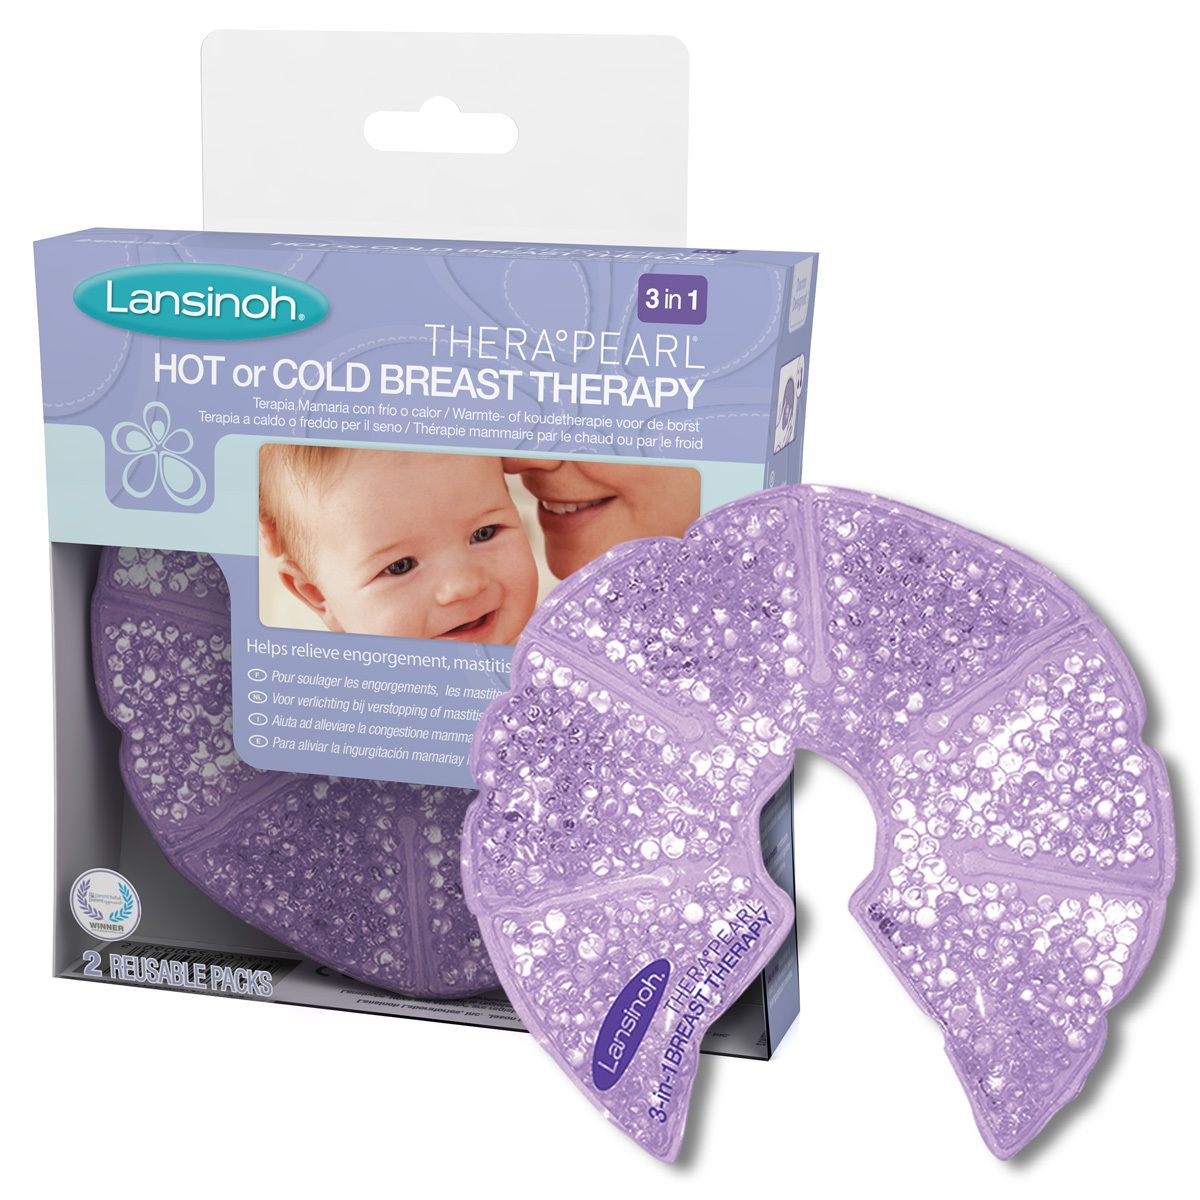 Lansinoh TheraPearl 3-in-1 Hot or Cold Breast Therapy 2 Reusable Pack